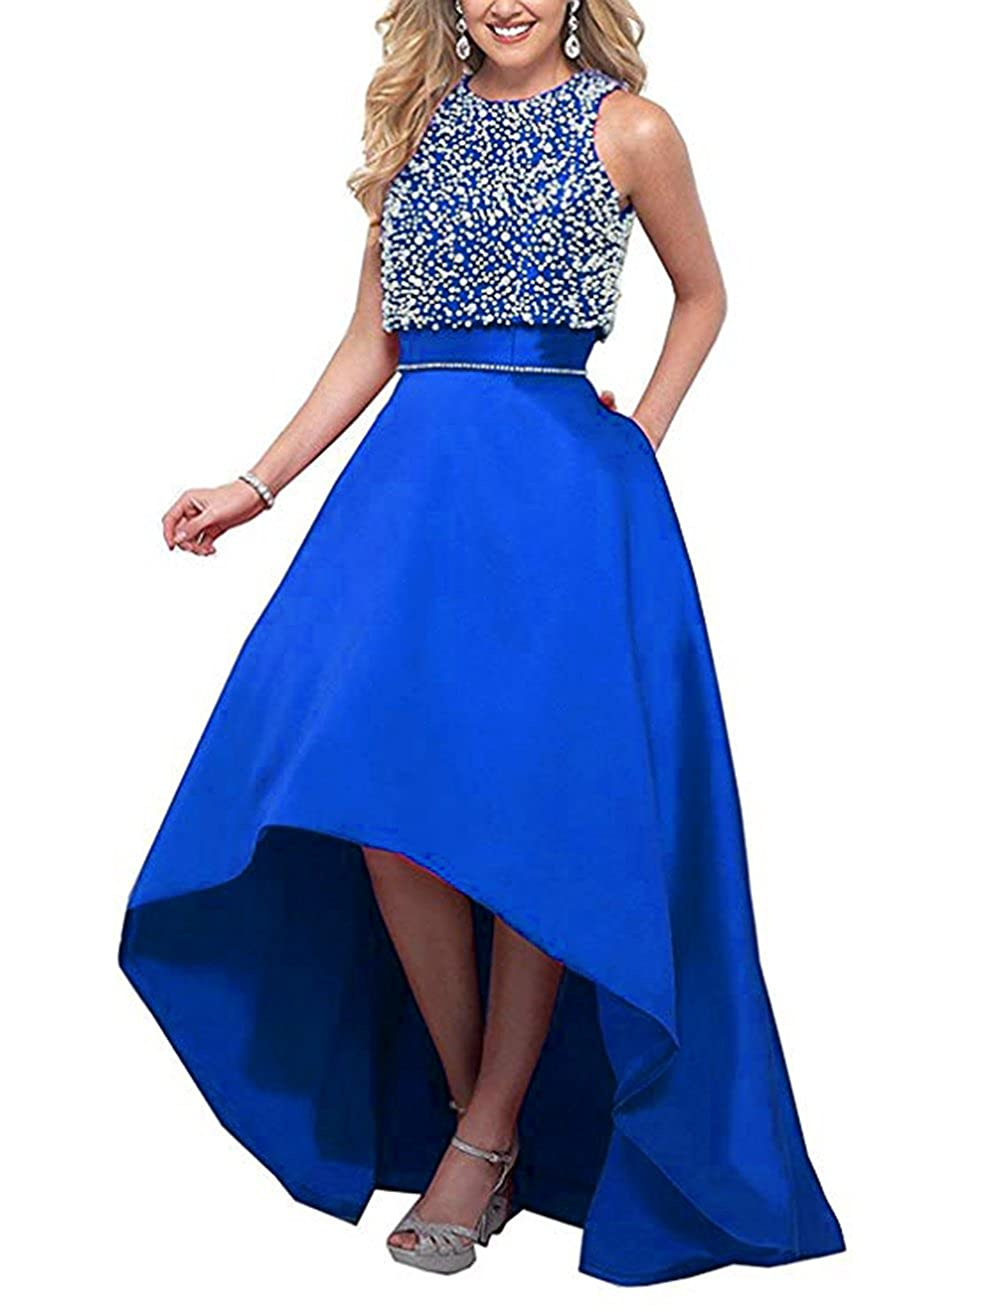 Royal bluee alilith.Z Sexy High Low Beaded Prom Dresses Long Formal Evening Party Gowns for Women 2 Piece with Jacket 2018